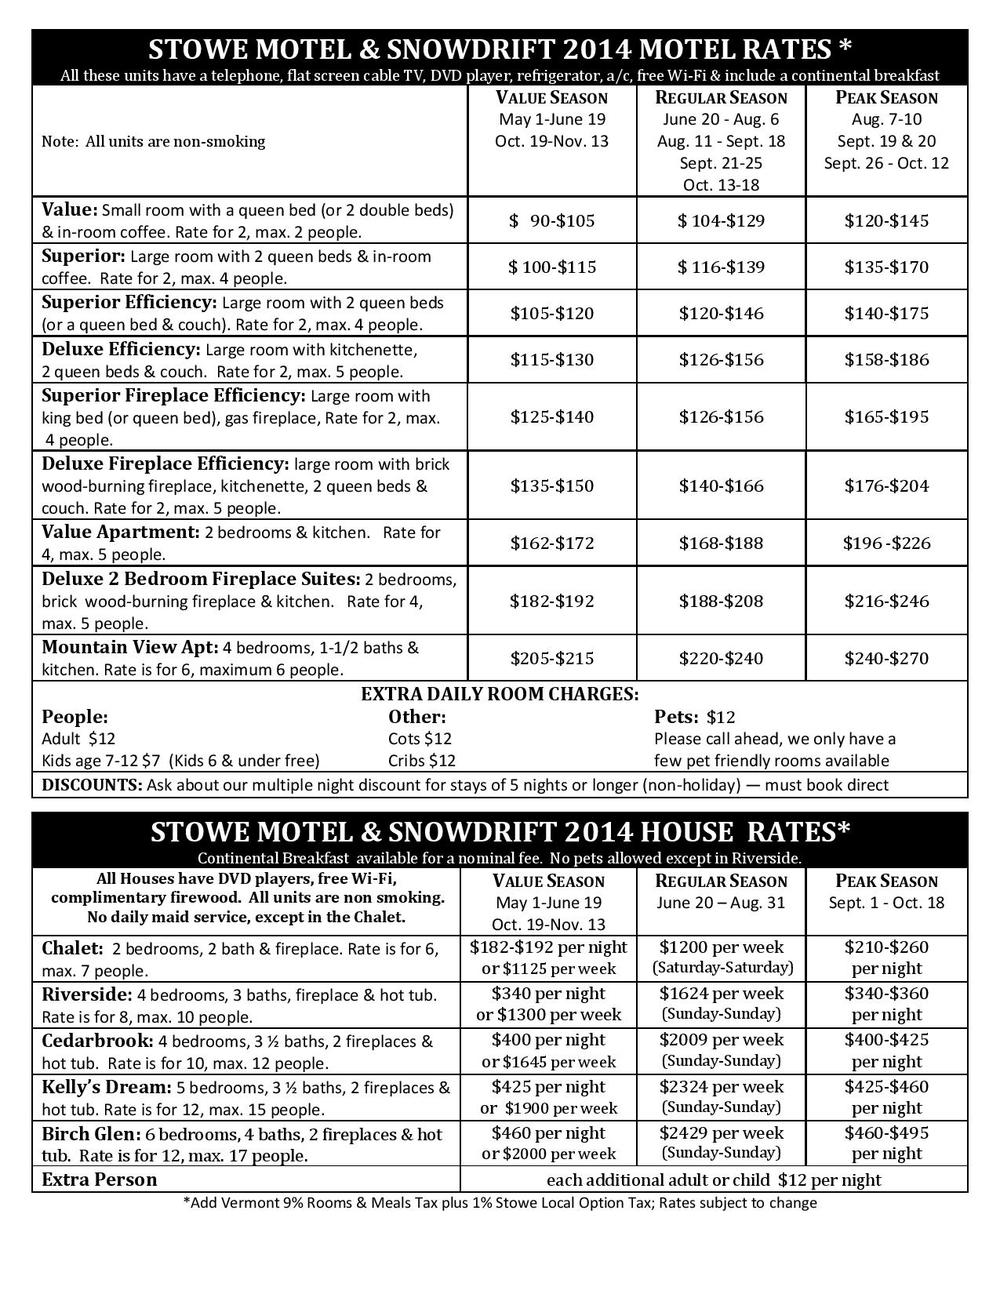 Stowe Motel summer rates